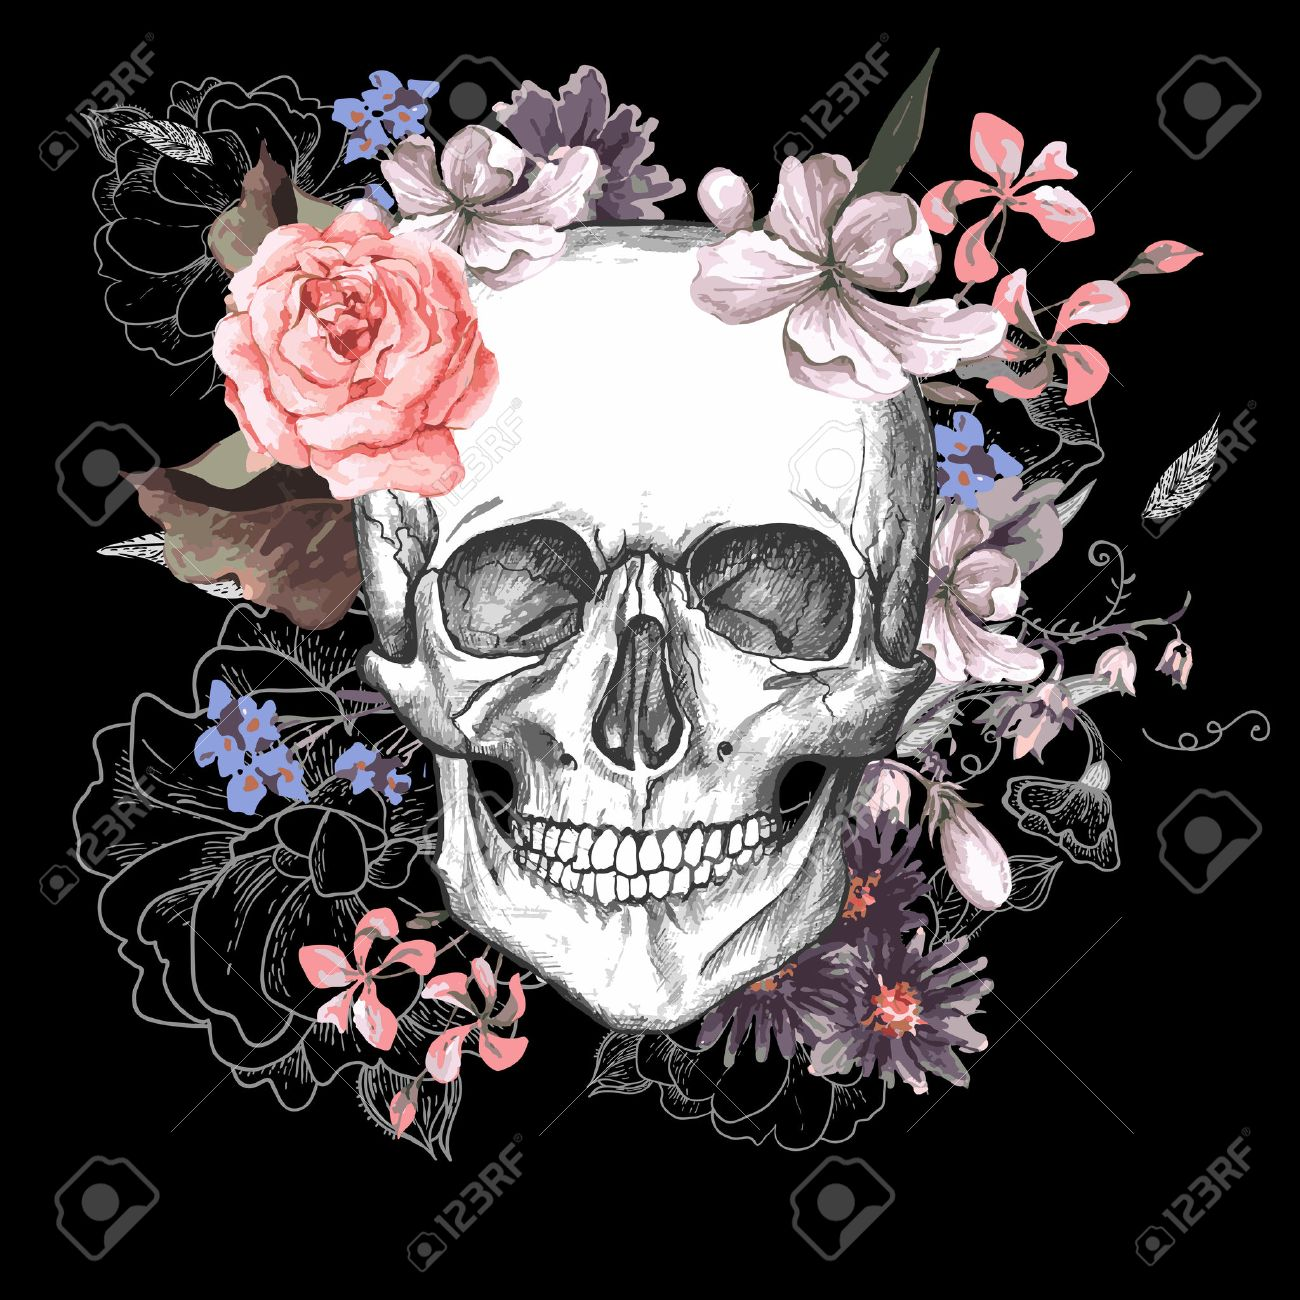 76945 gothic stock vector illustration and royalty free gothic clipart skull and flowers day of the dead illustration kristyandbryce Images